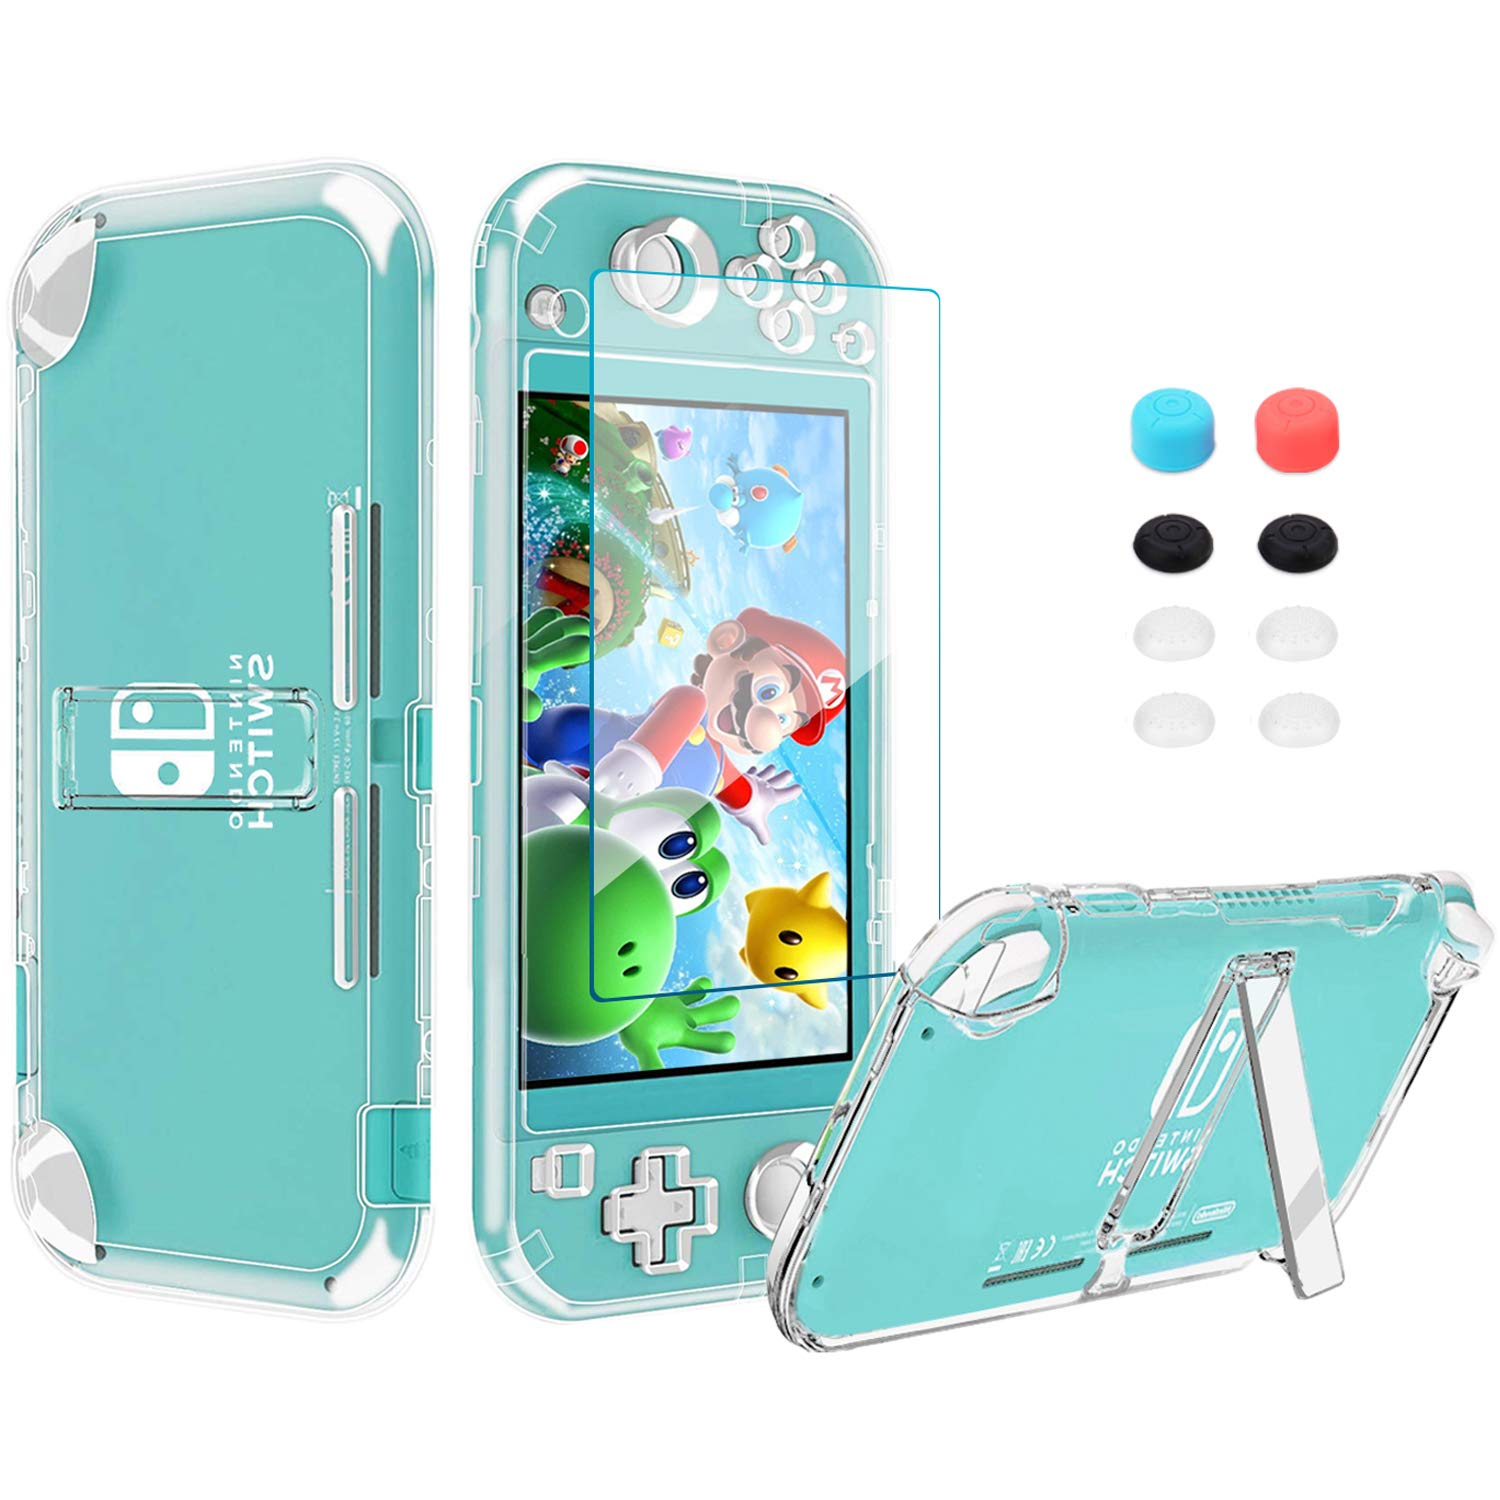 Switch Accessories Kit 13in 1 for Nintendo Switch Lite with Hard Cover Case, Screen Protector Tempered Glass, Switch Joystick Caps Cleaning Wipe, Cleaning Cloth